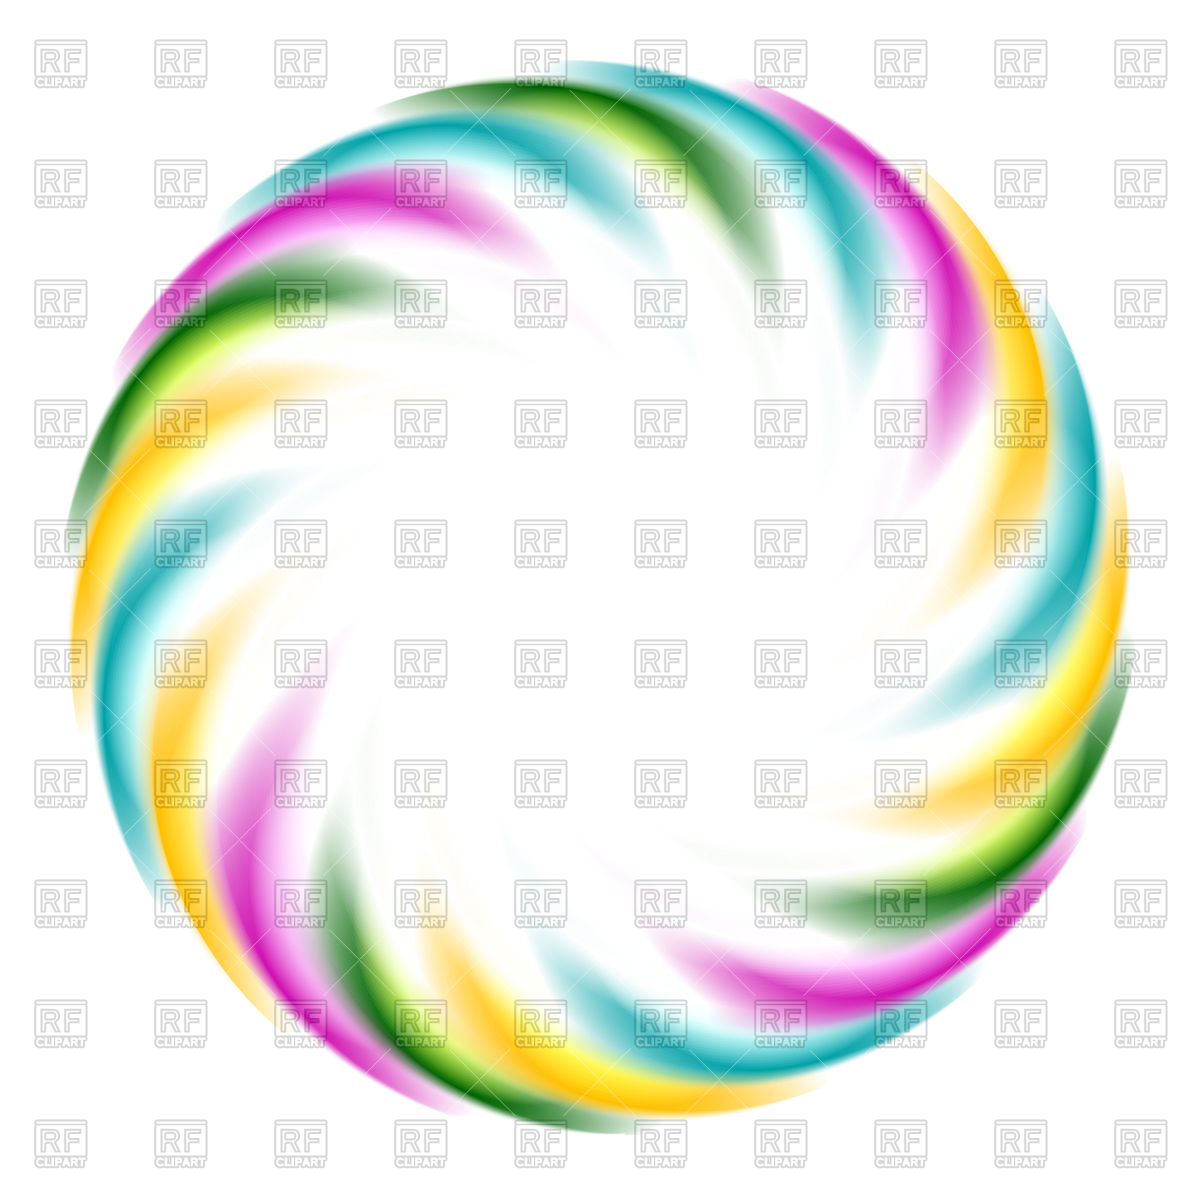 Colorful iridescent circle Vector Image #77310.